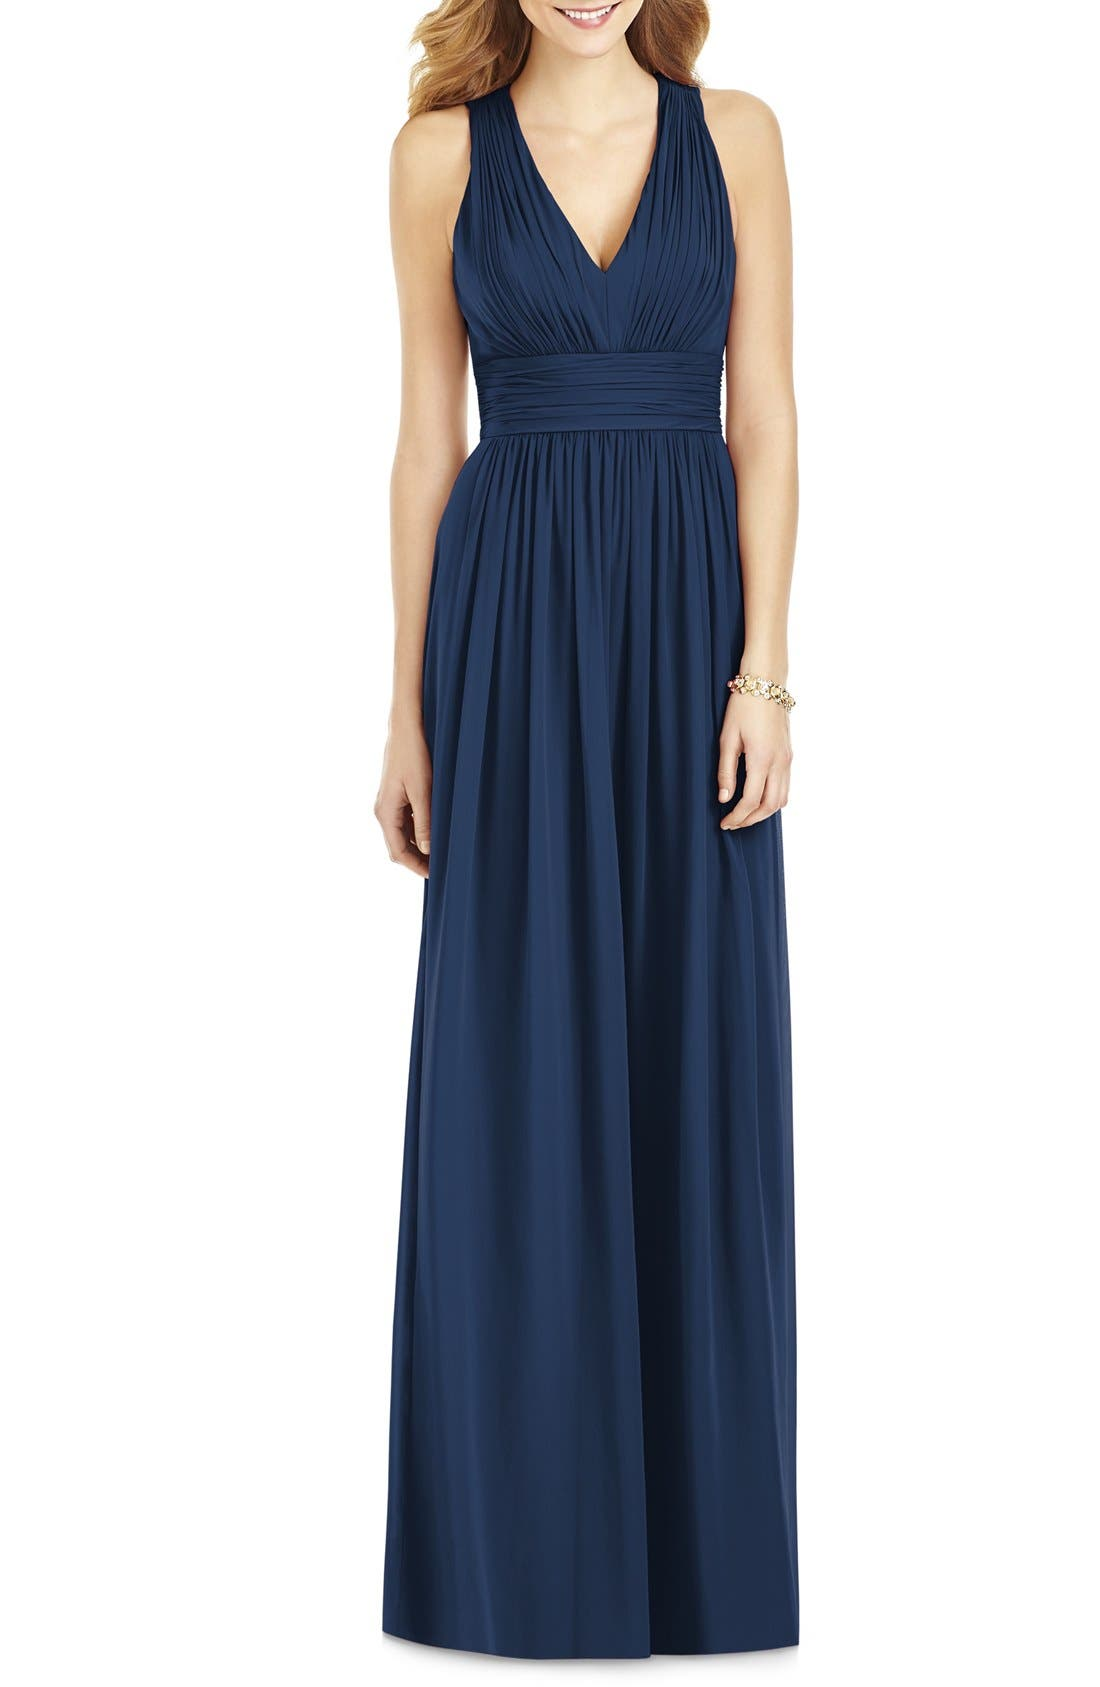 Main Image - After Six Crisscross Back Ruched Chiffon V-Neck Gown